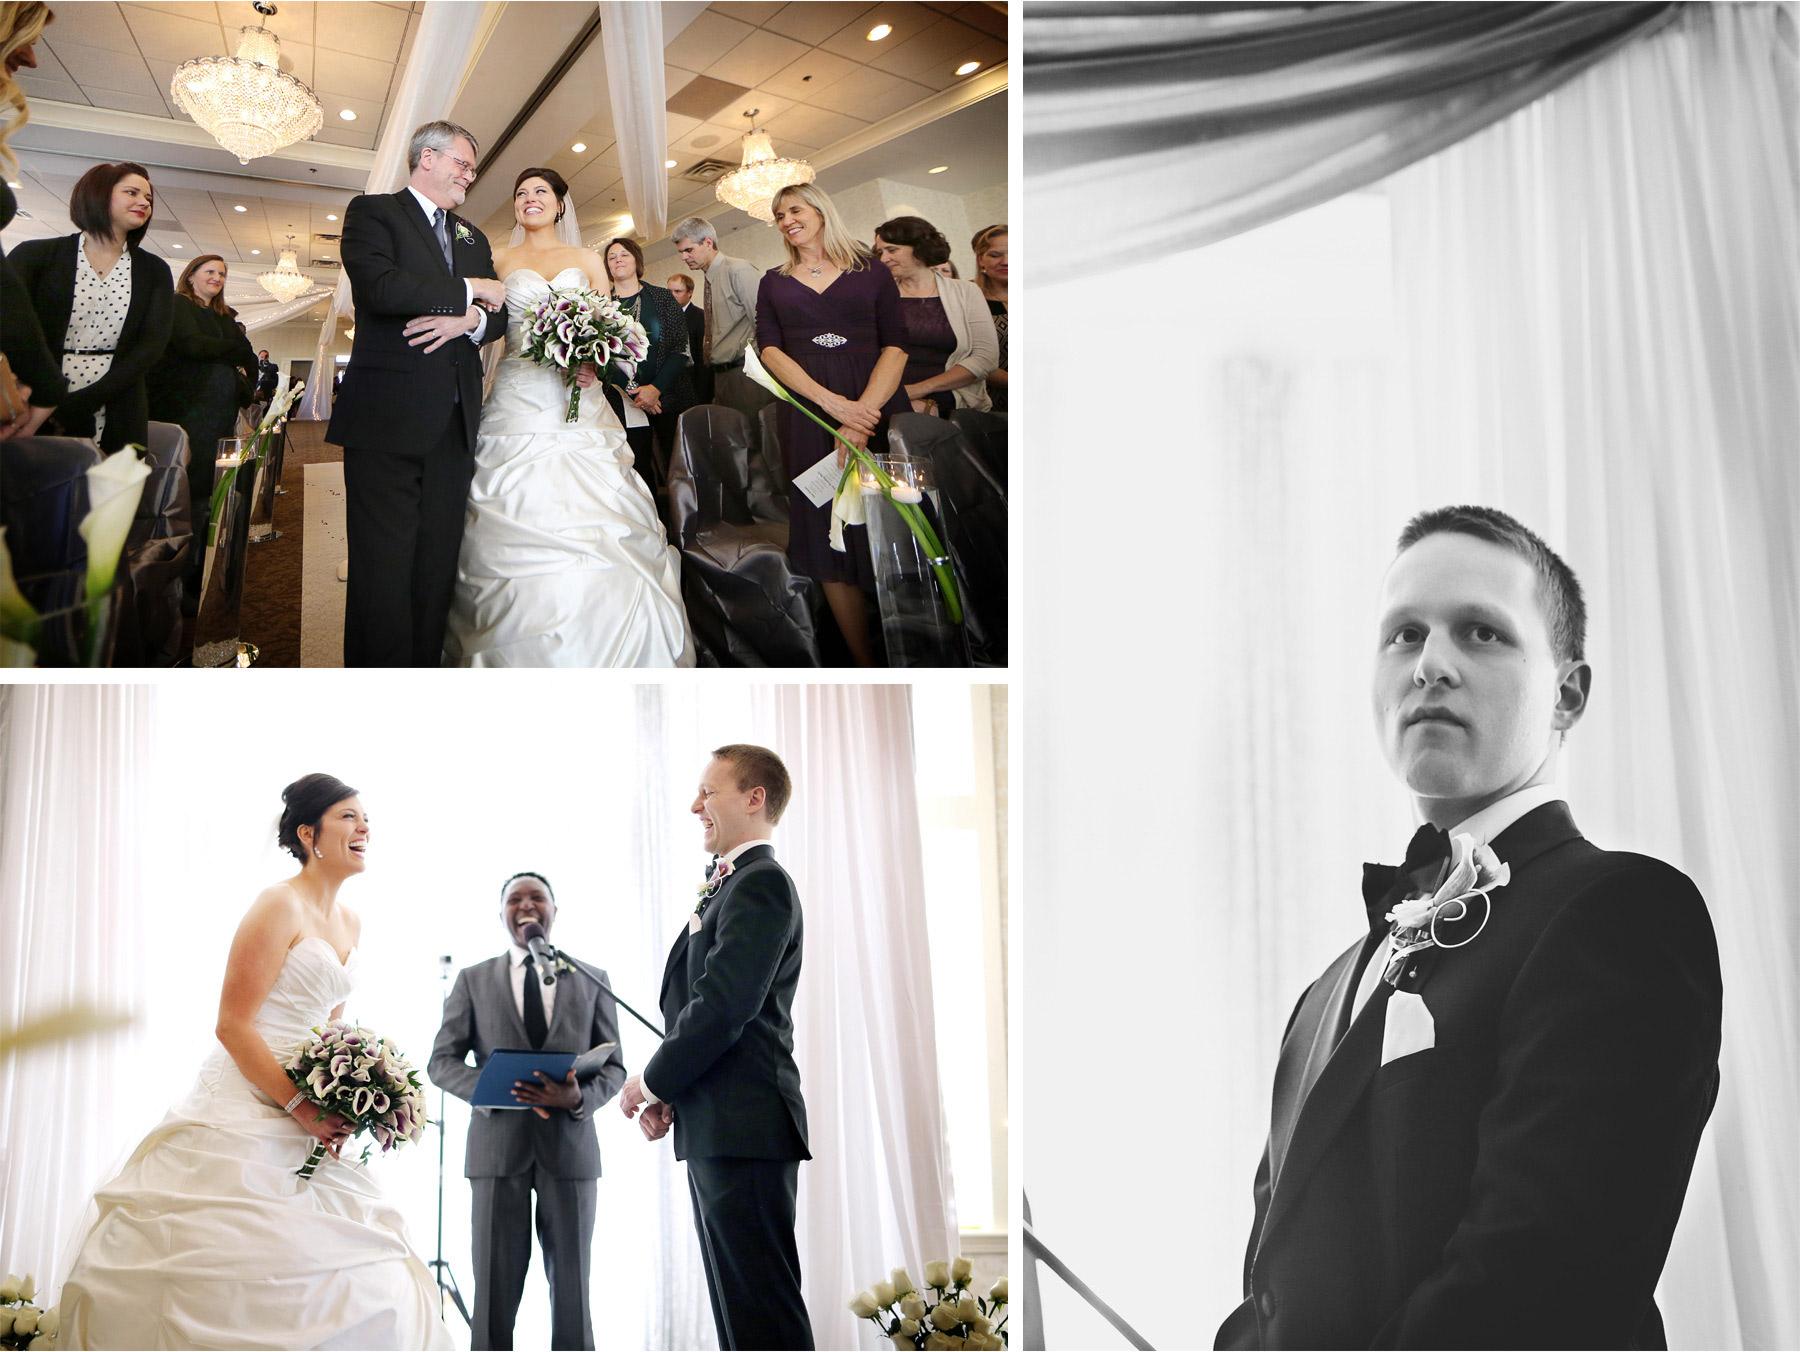 09-Eden-Prairie-Minnesota-Wedding-Photographer-by-Andrew-Vick-Photography-Fall-Autumn-Bearpath-Golf-Country-Club-Ceremony-Bride-Groom-Father-Parents-Processional-Vows-Black-and-White-Brittany-and-Ryan.jpg